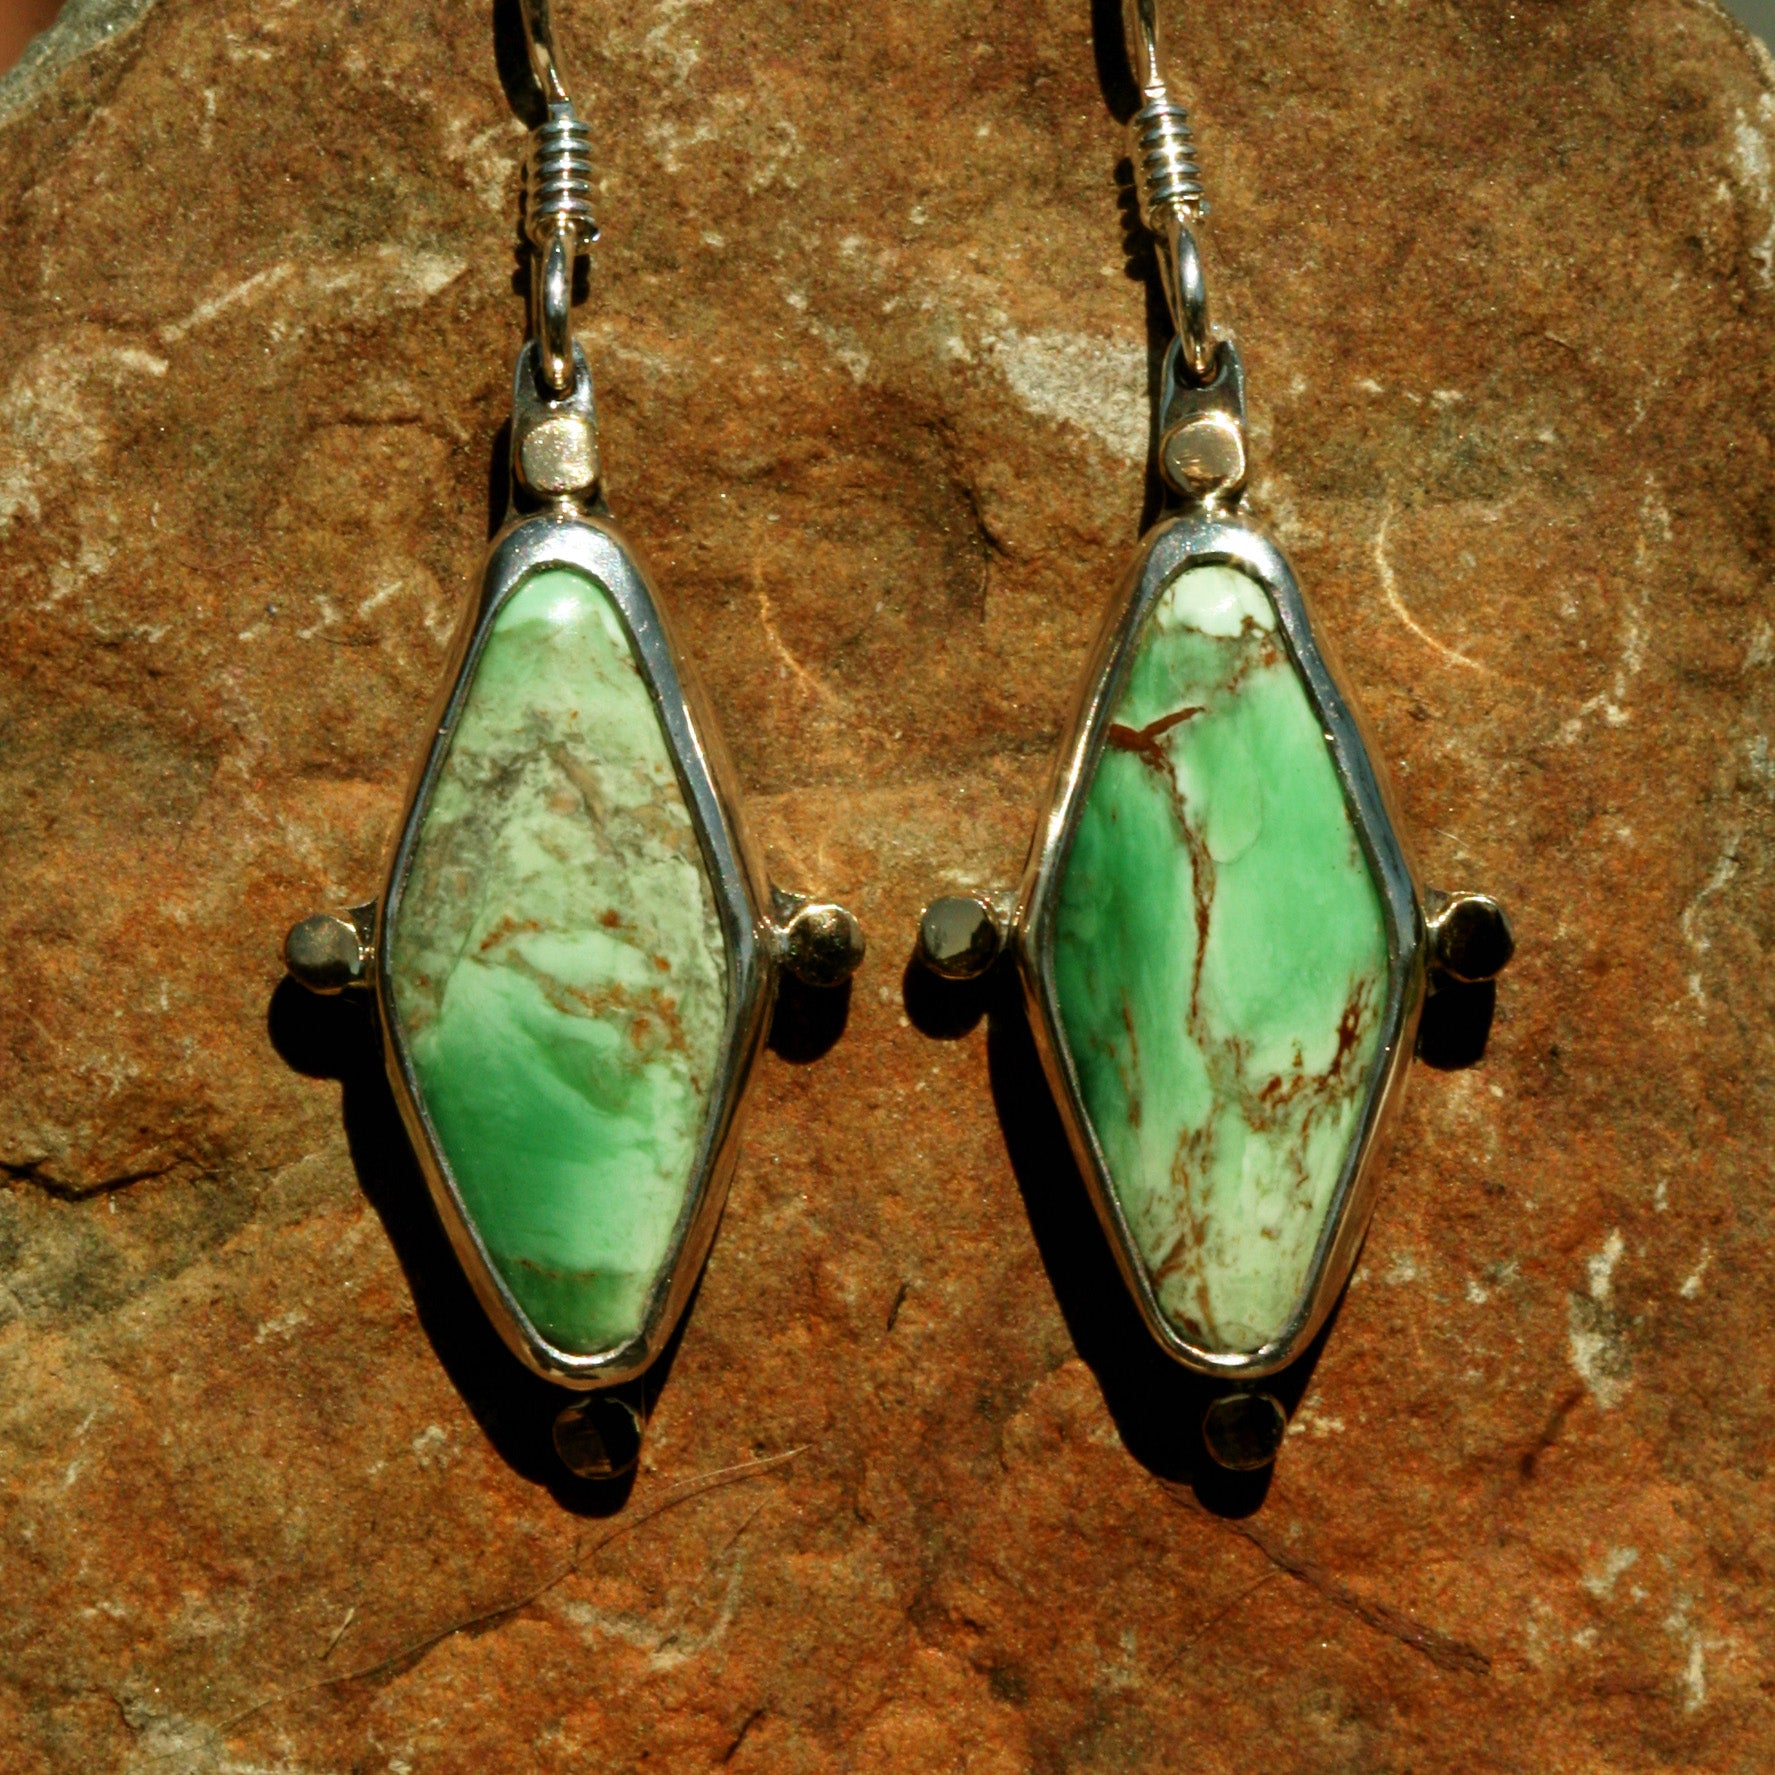 Spring Light, Vivid Green Earrings